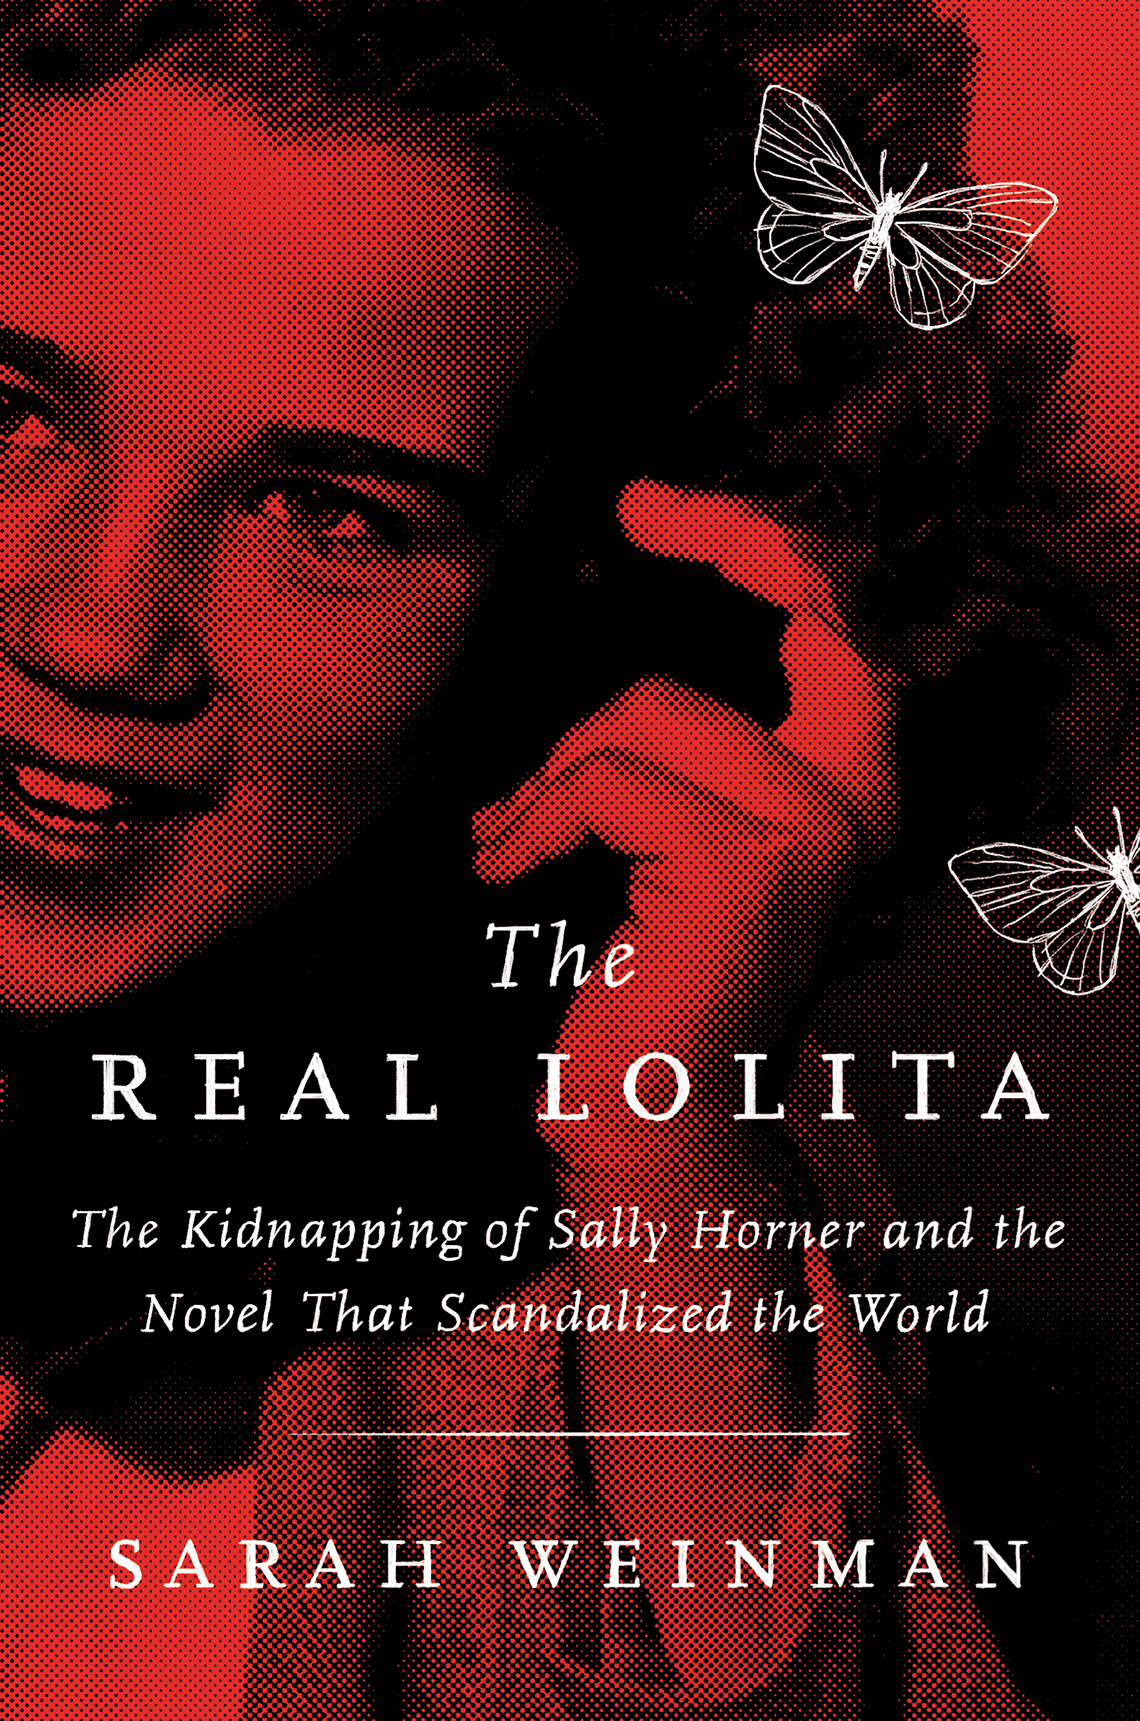 Book cover reads, The Real Lolita, The Kidnapping of Sally Horner and the Novel That Scandalized the World